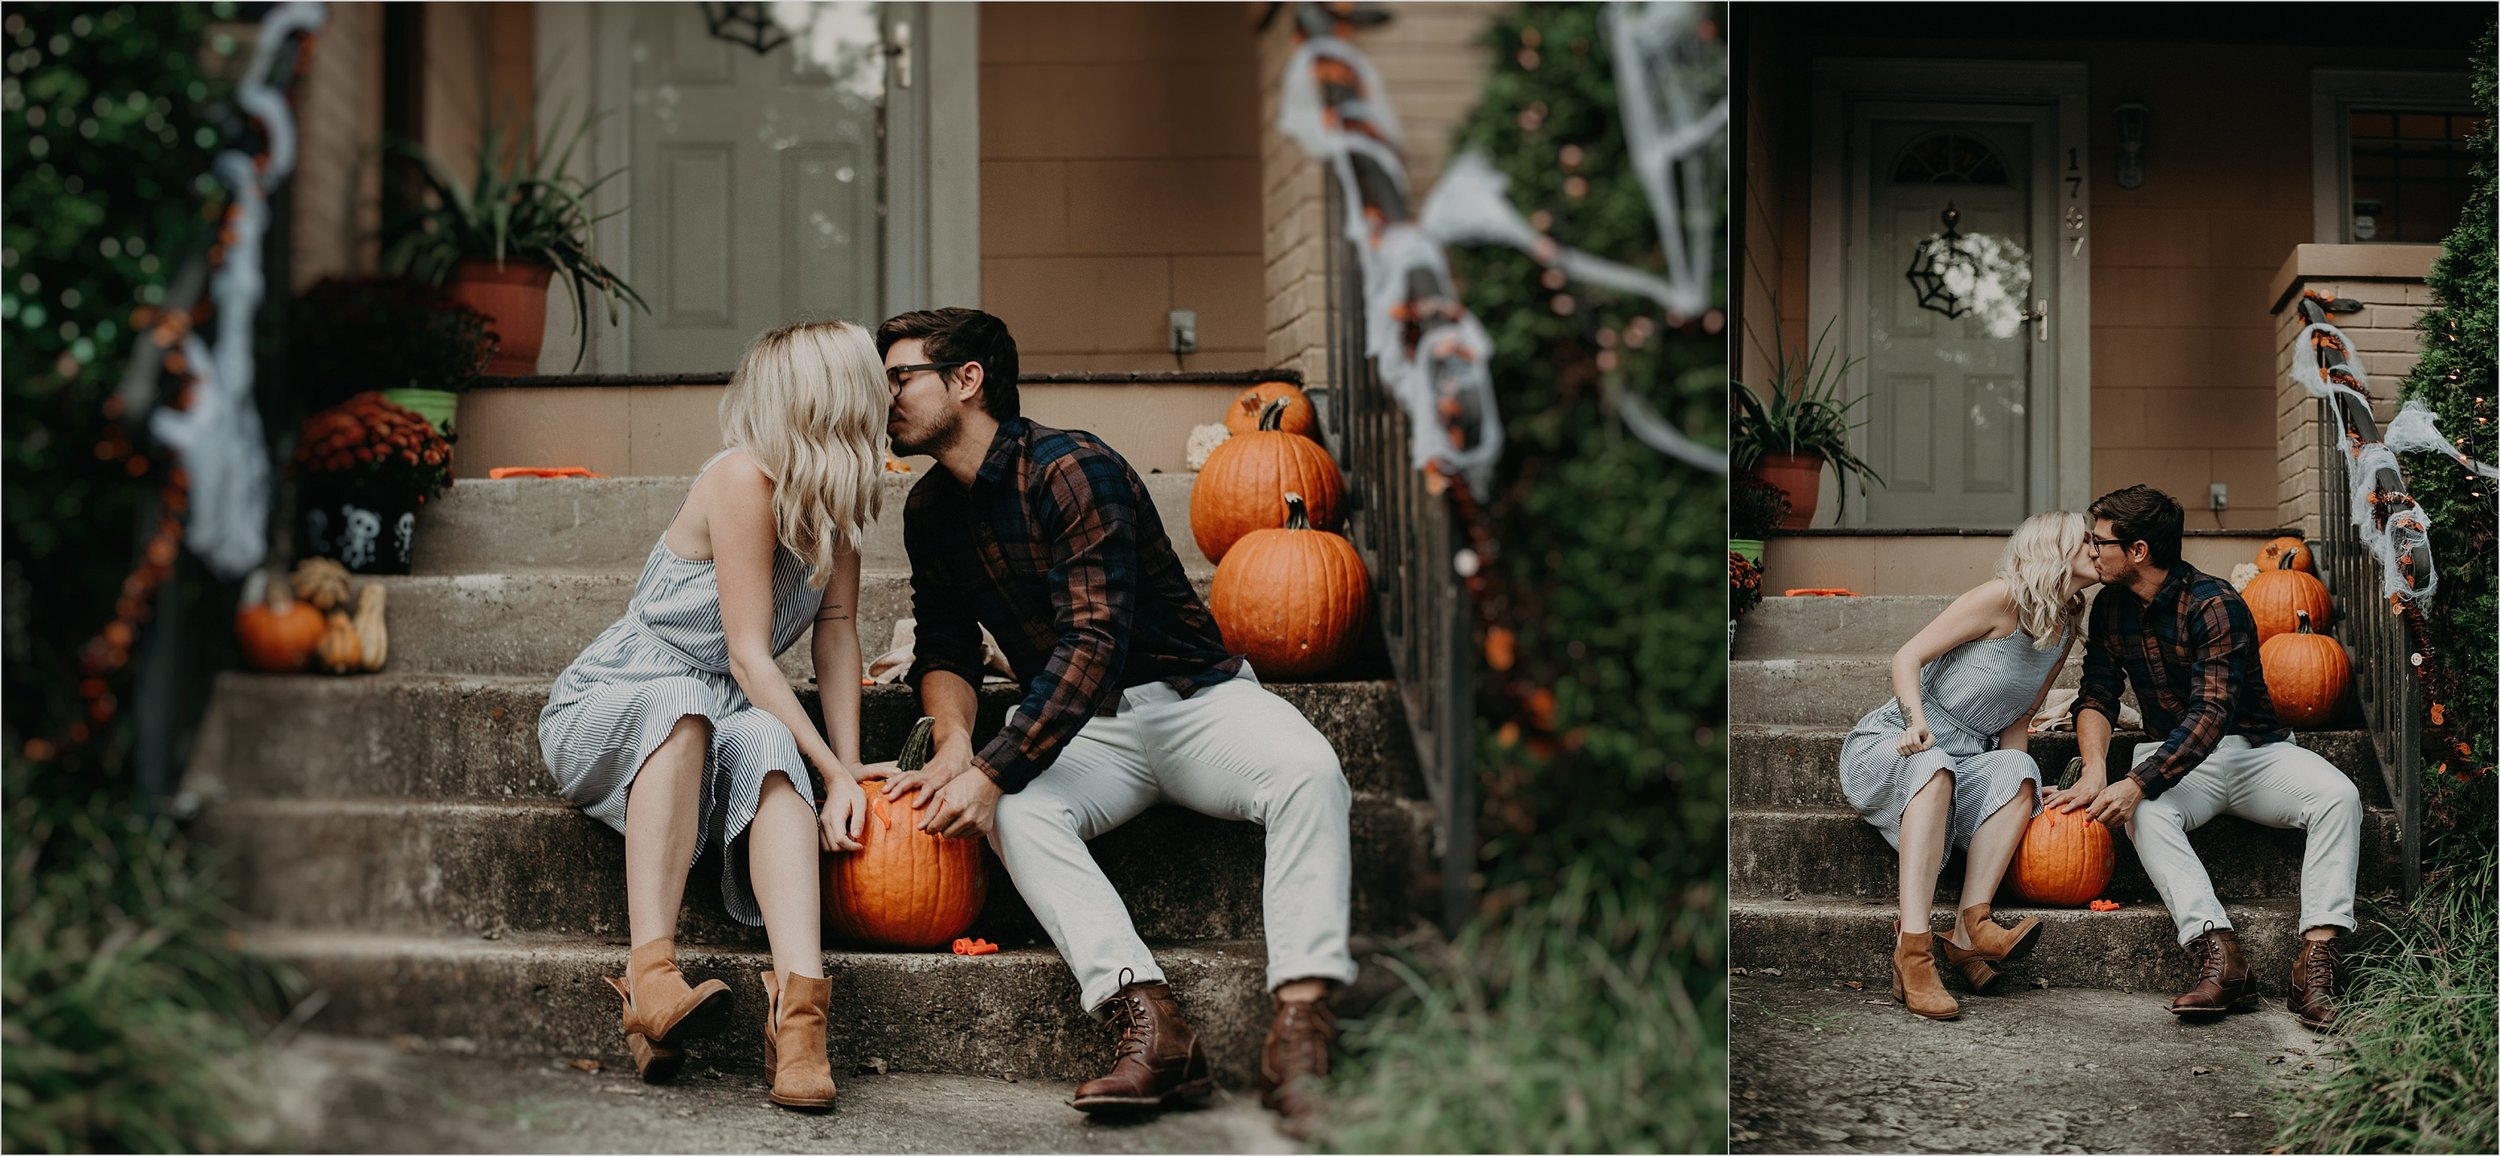 Taylor_English_Photography_Pumpkin_Carving_Chattanooga_Tennessee_0012.jpg